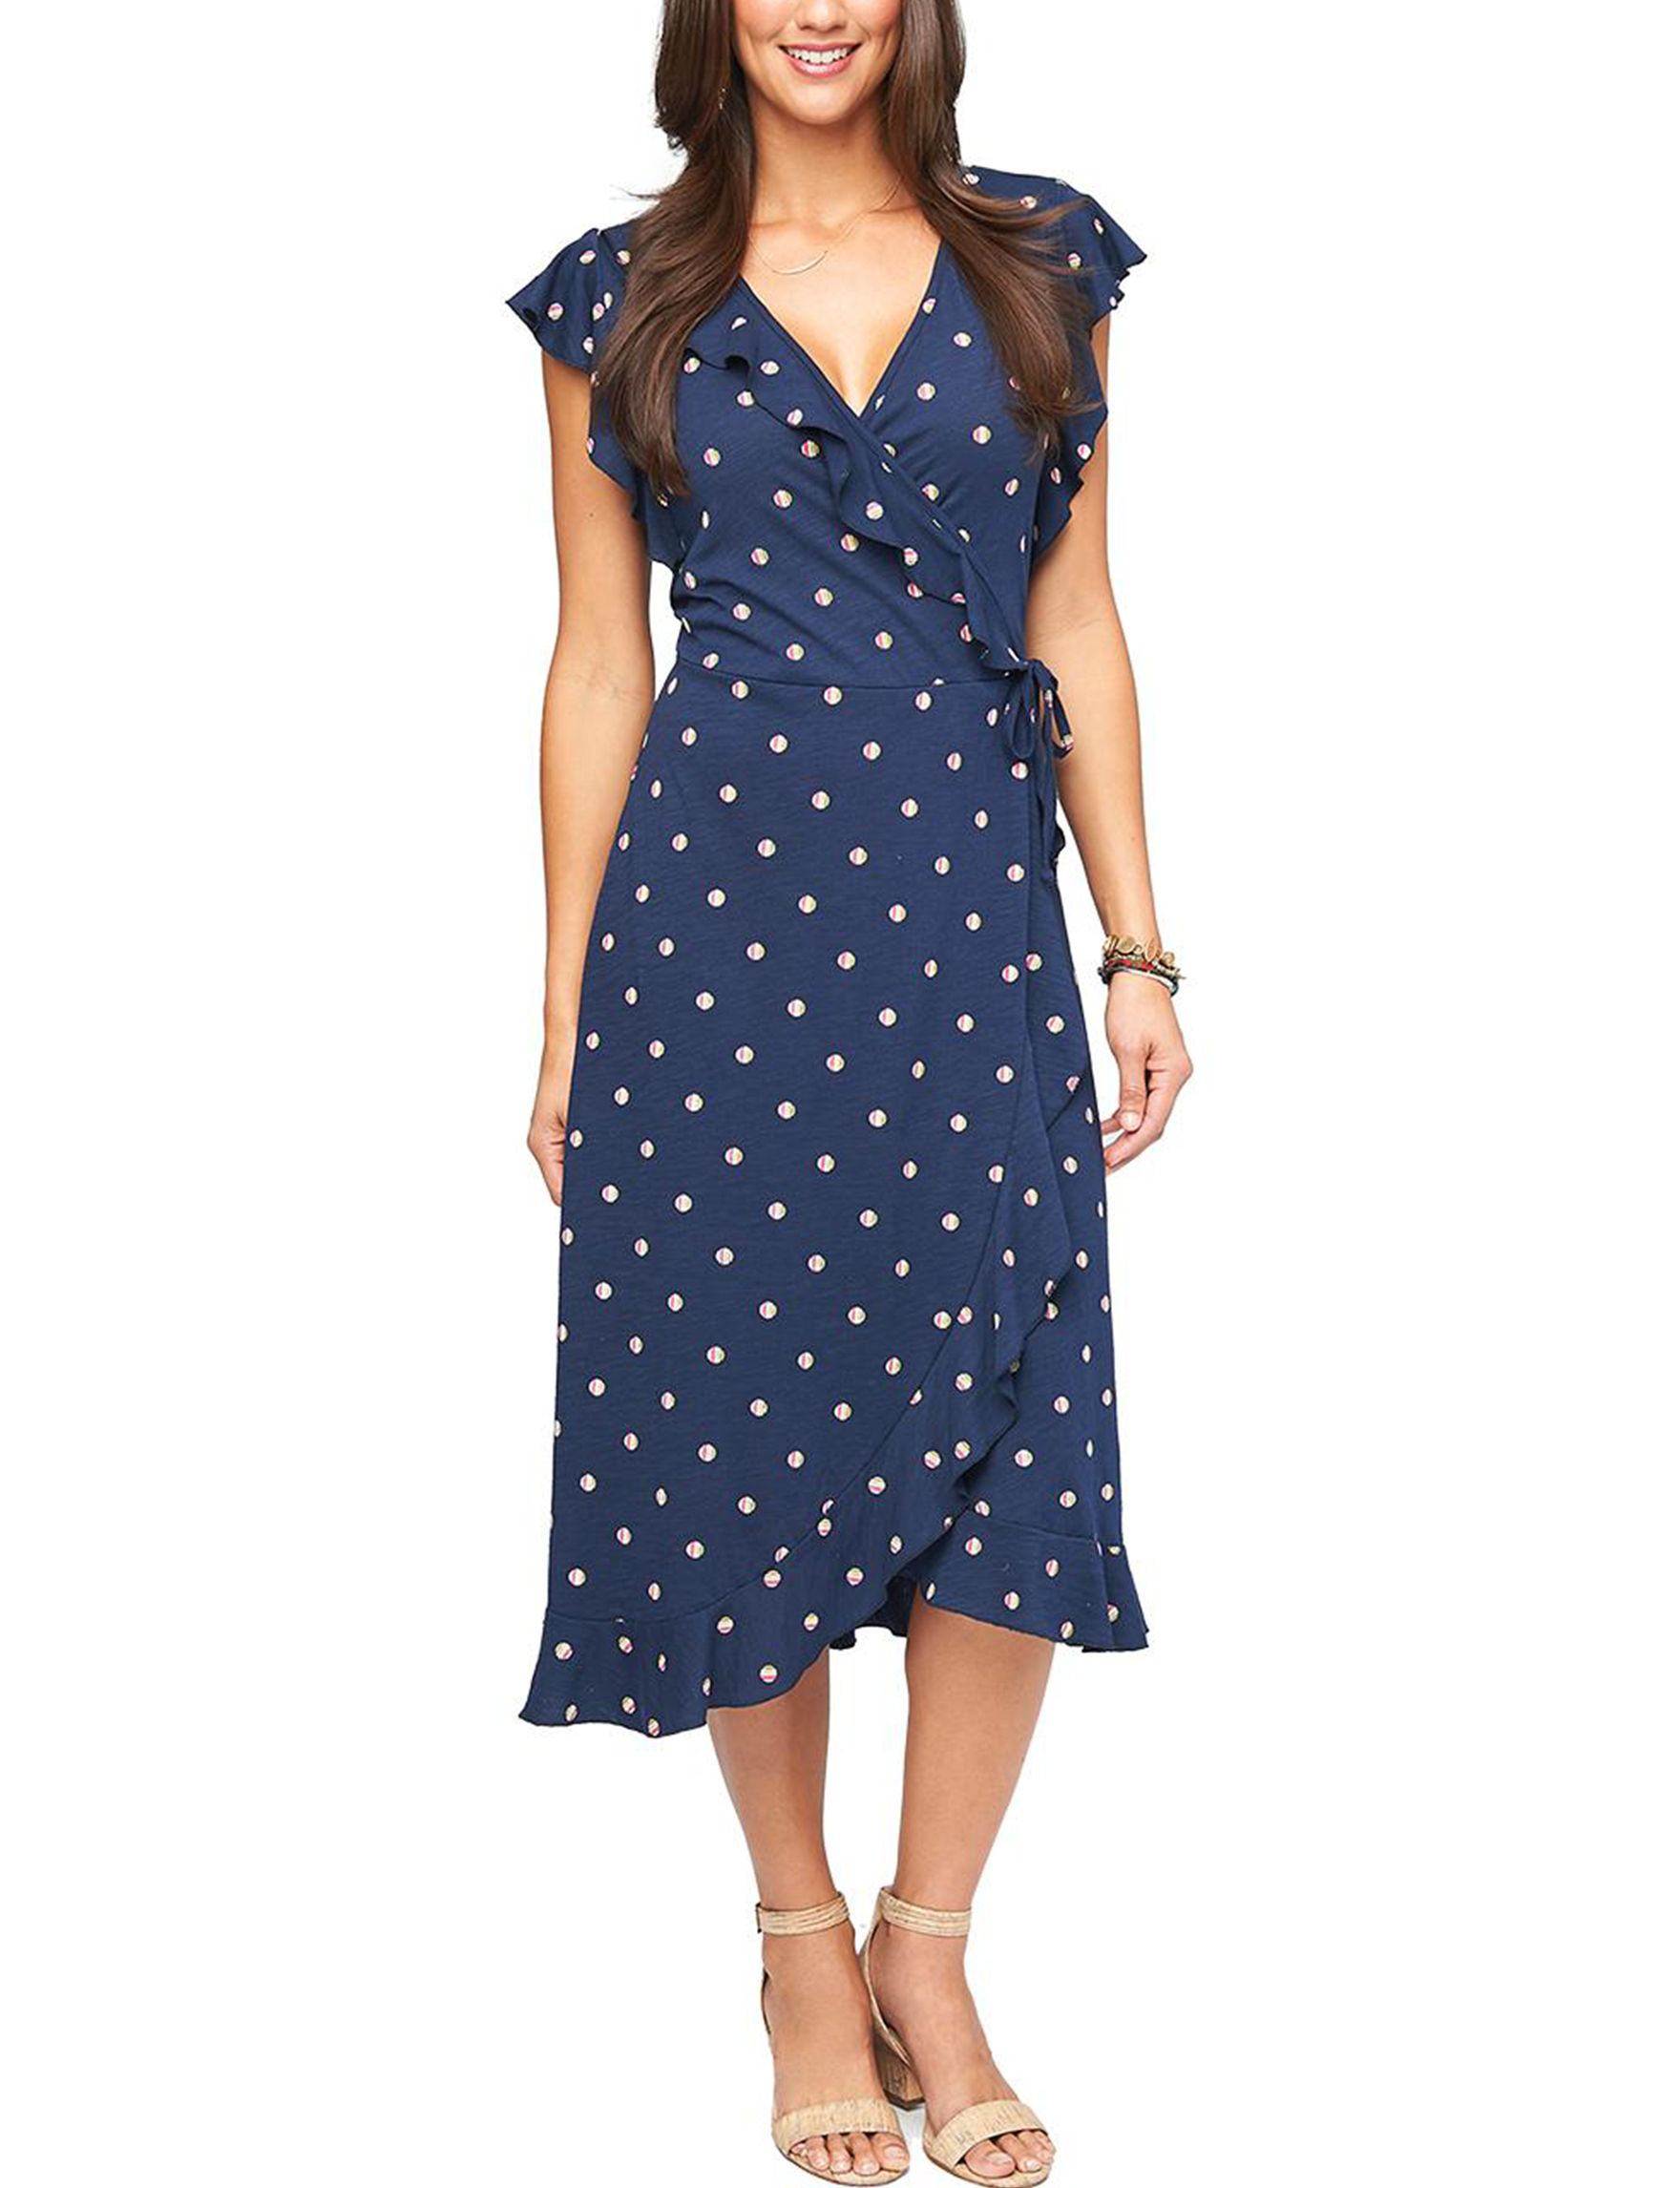 Democracy Navy Everyday & Casual Fit & Flare Dresses